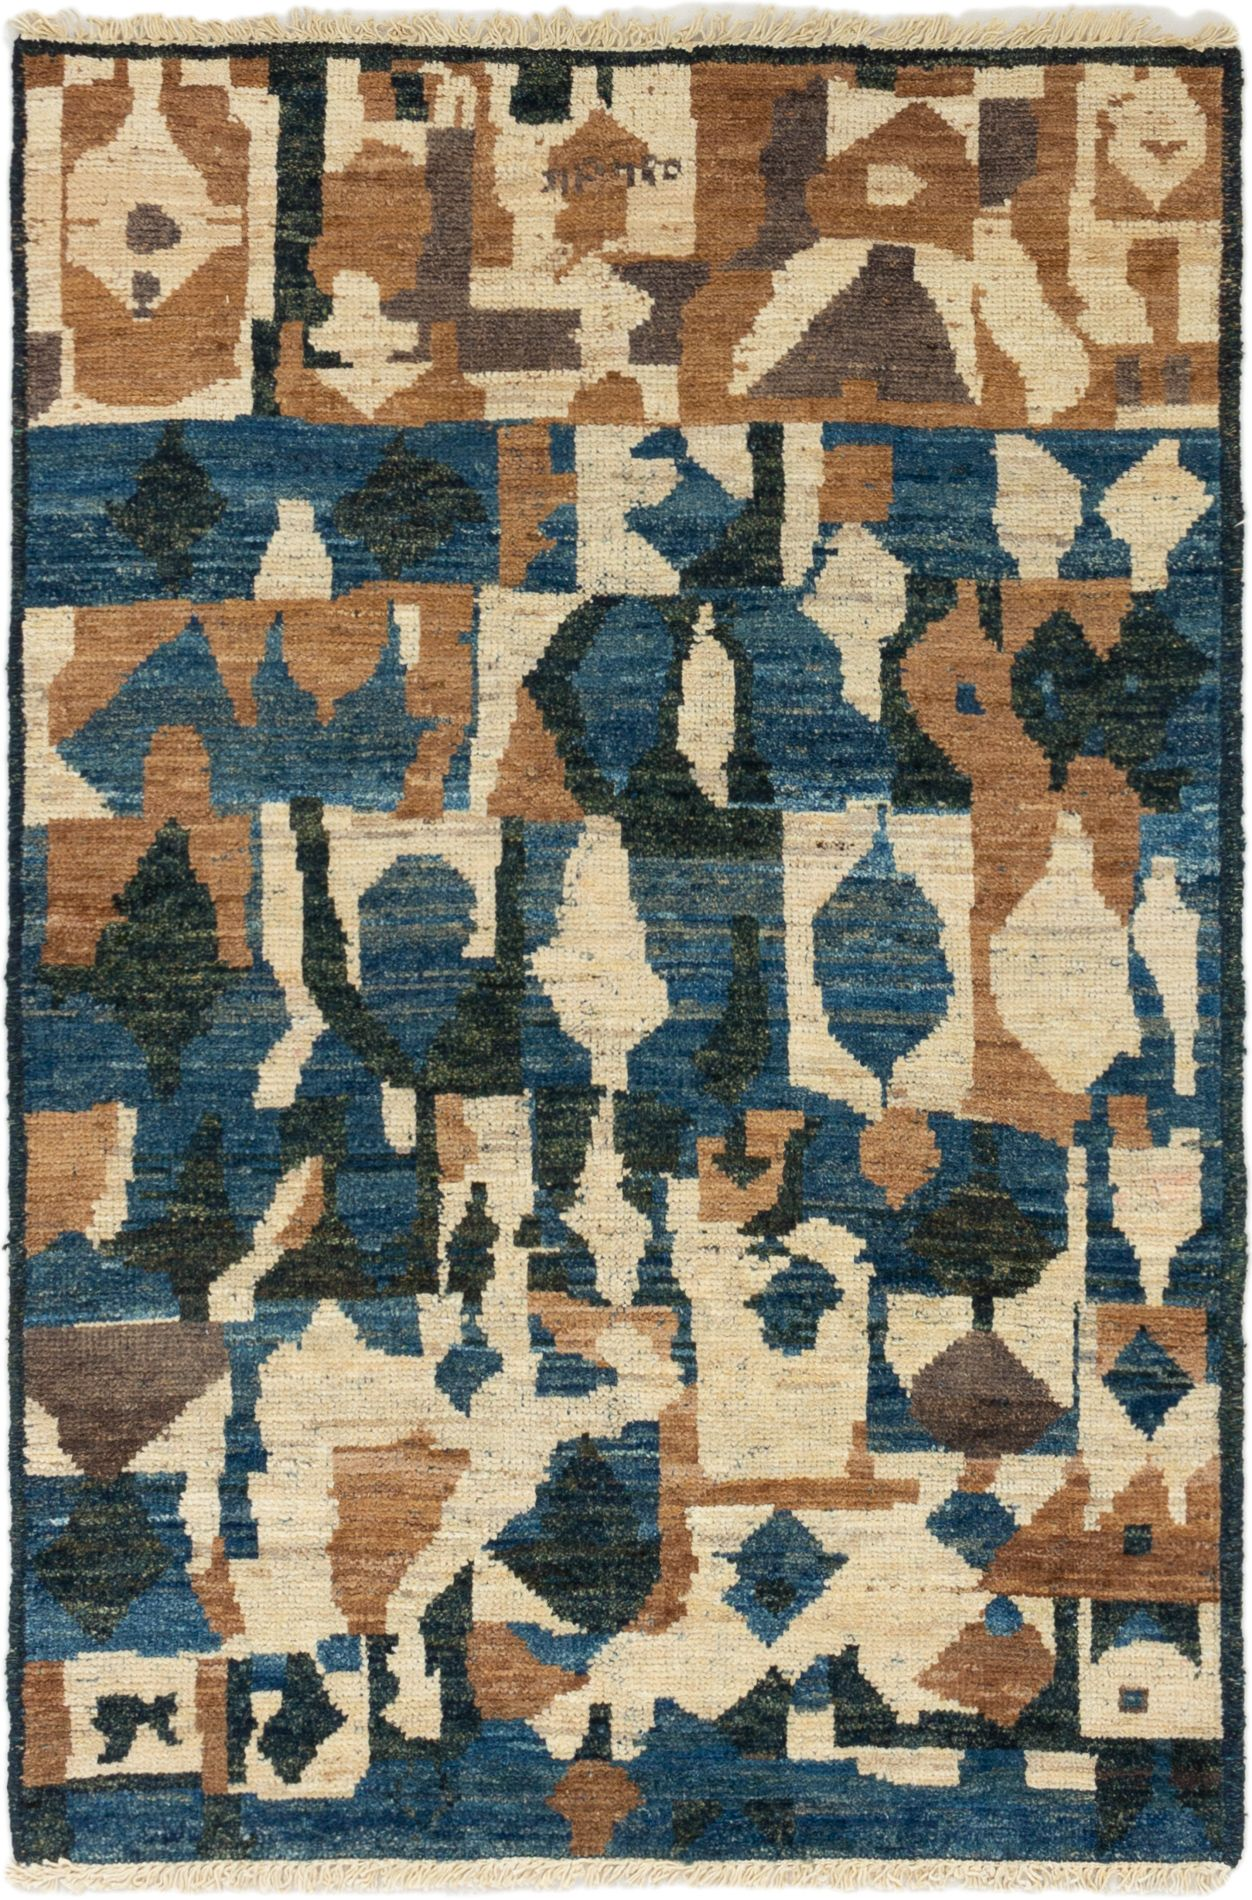 """Hand-knotted Shalimar Blue, Cream Wool Rug 3'9"""" x 5'8"""" Size: 3'9"""" x 5'8"""""""